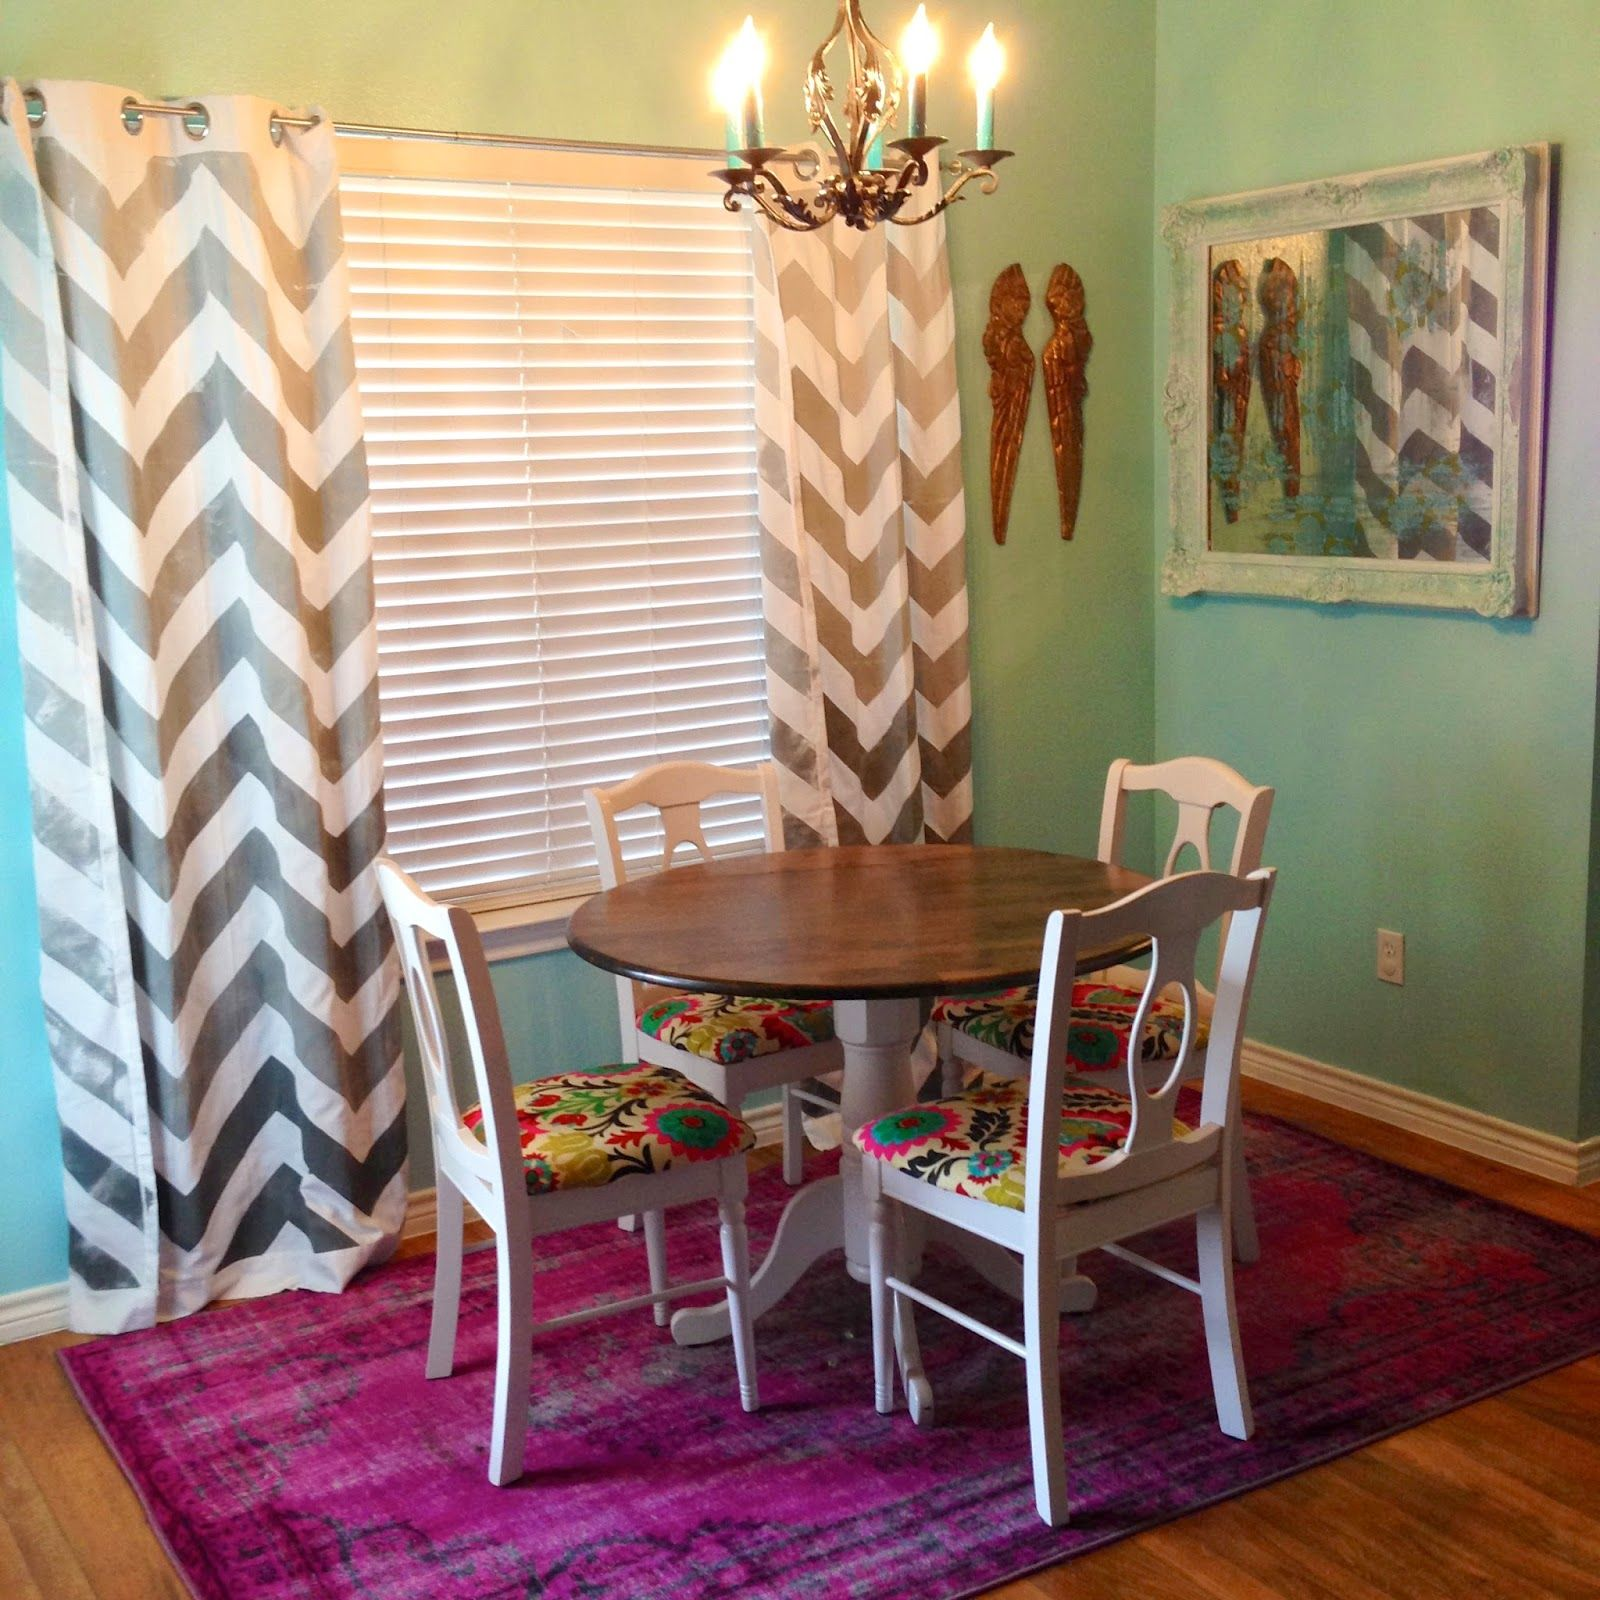 Kitchen Table In Bedroom: Small Kitchen Table